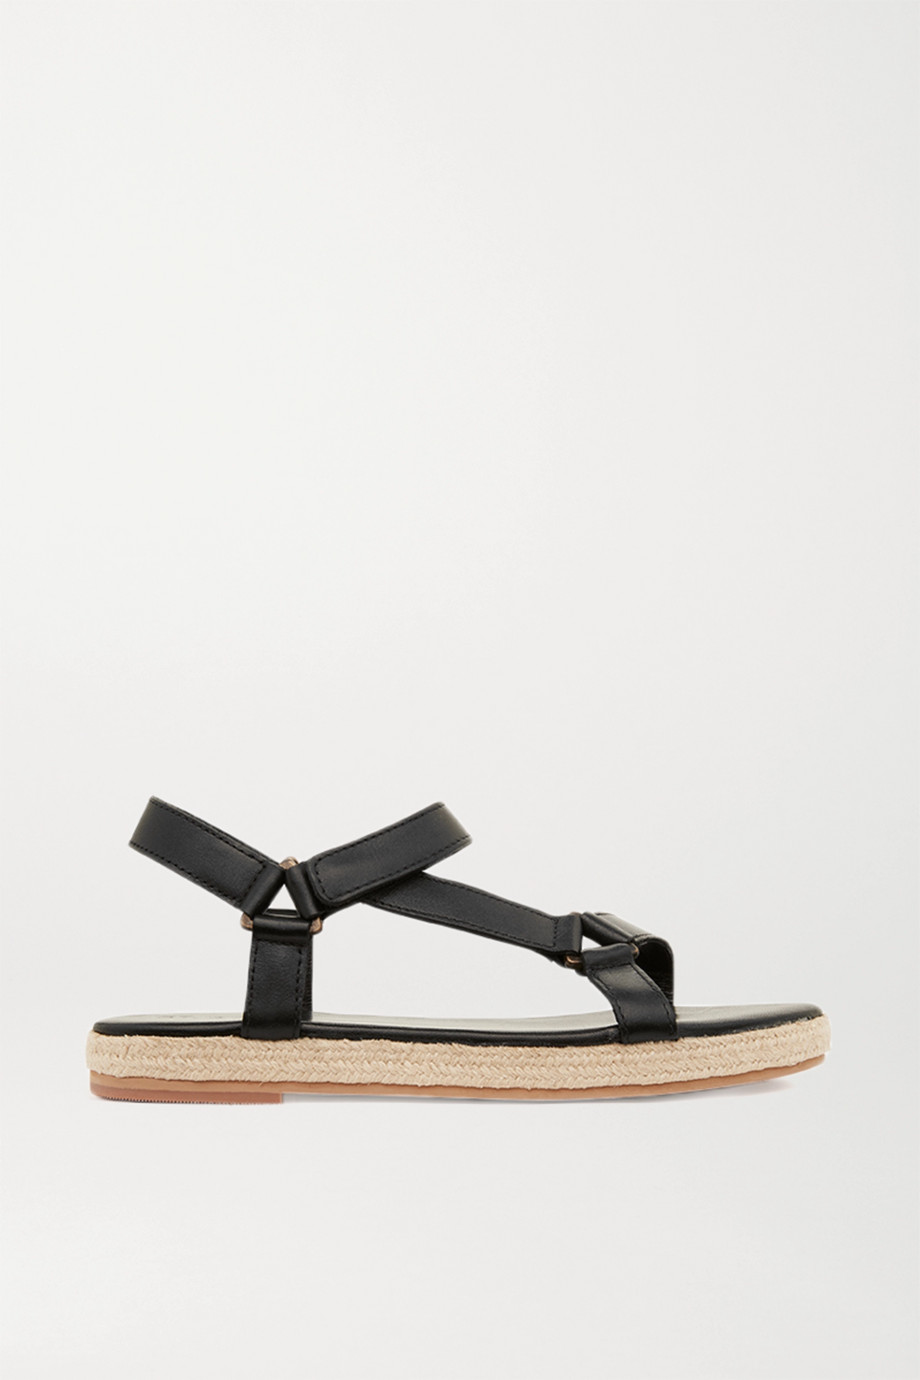 ST. AGNI + NET SUSTAIN Sportsu leather sandals